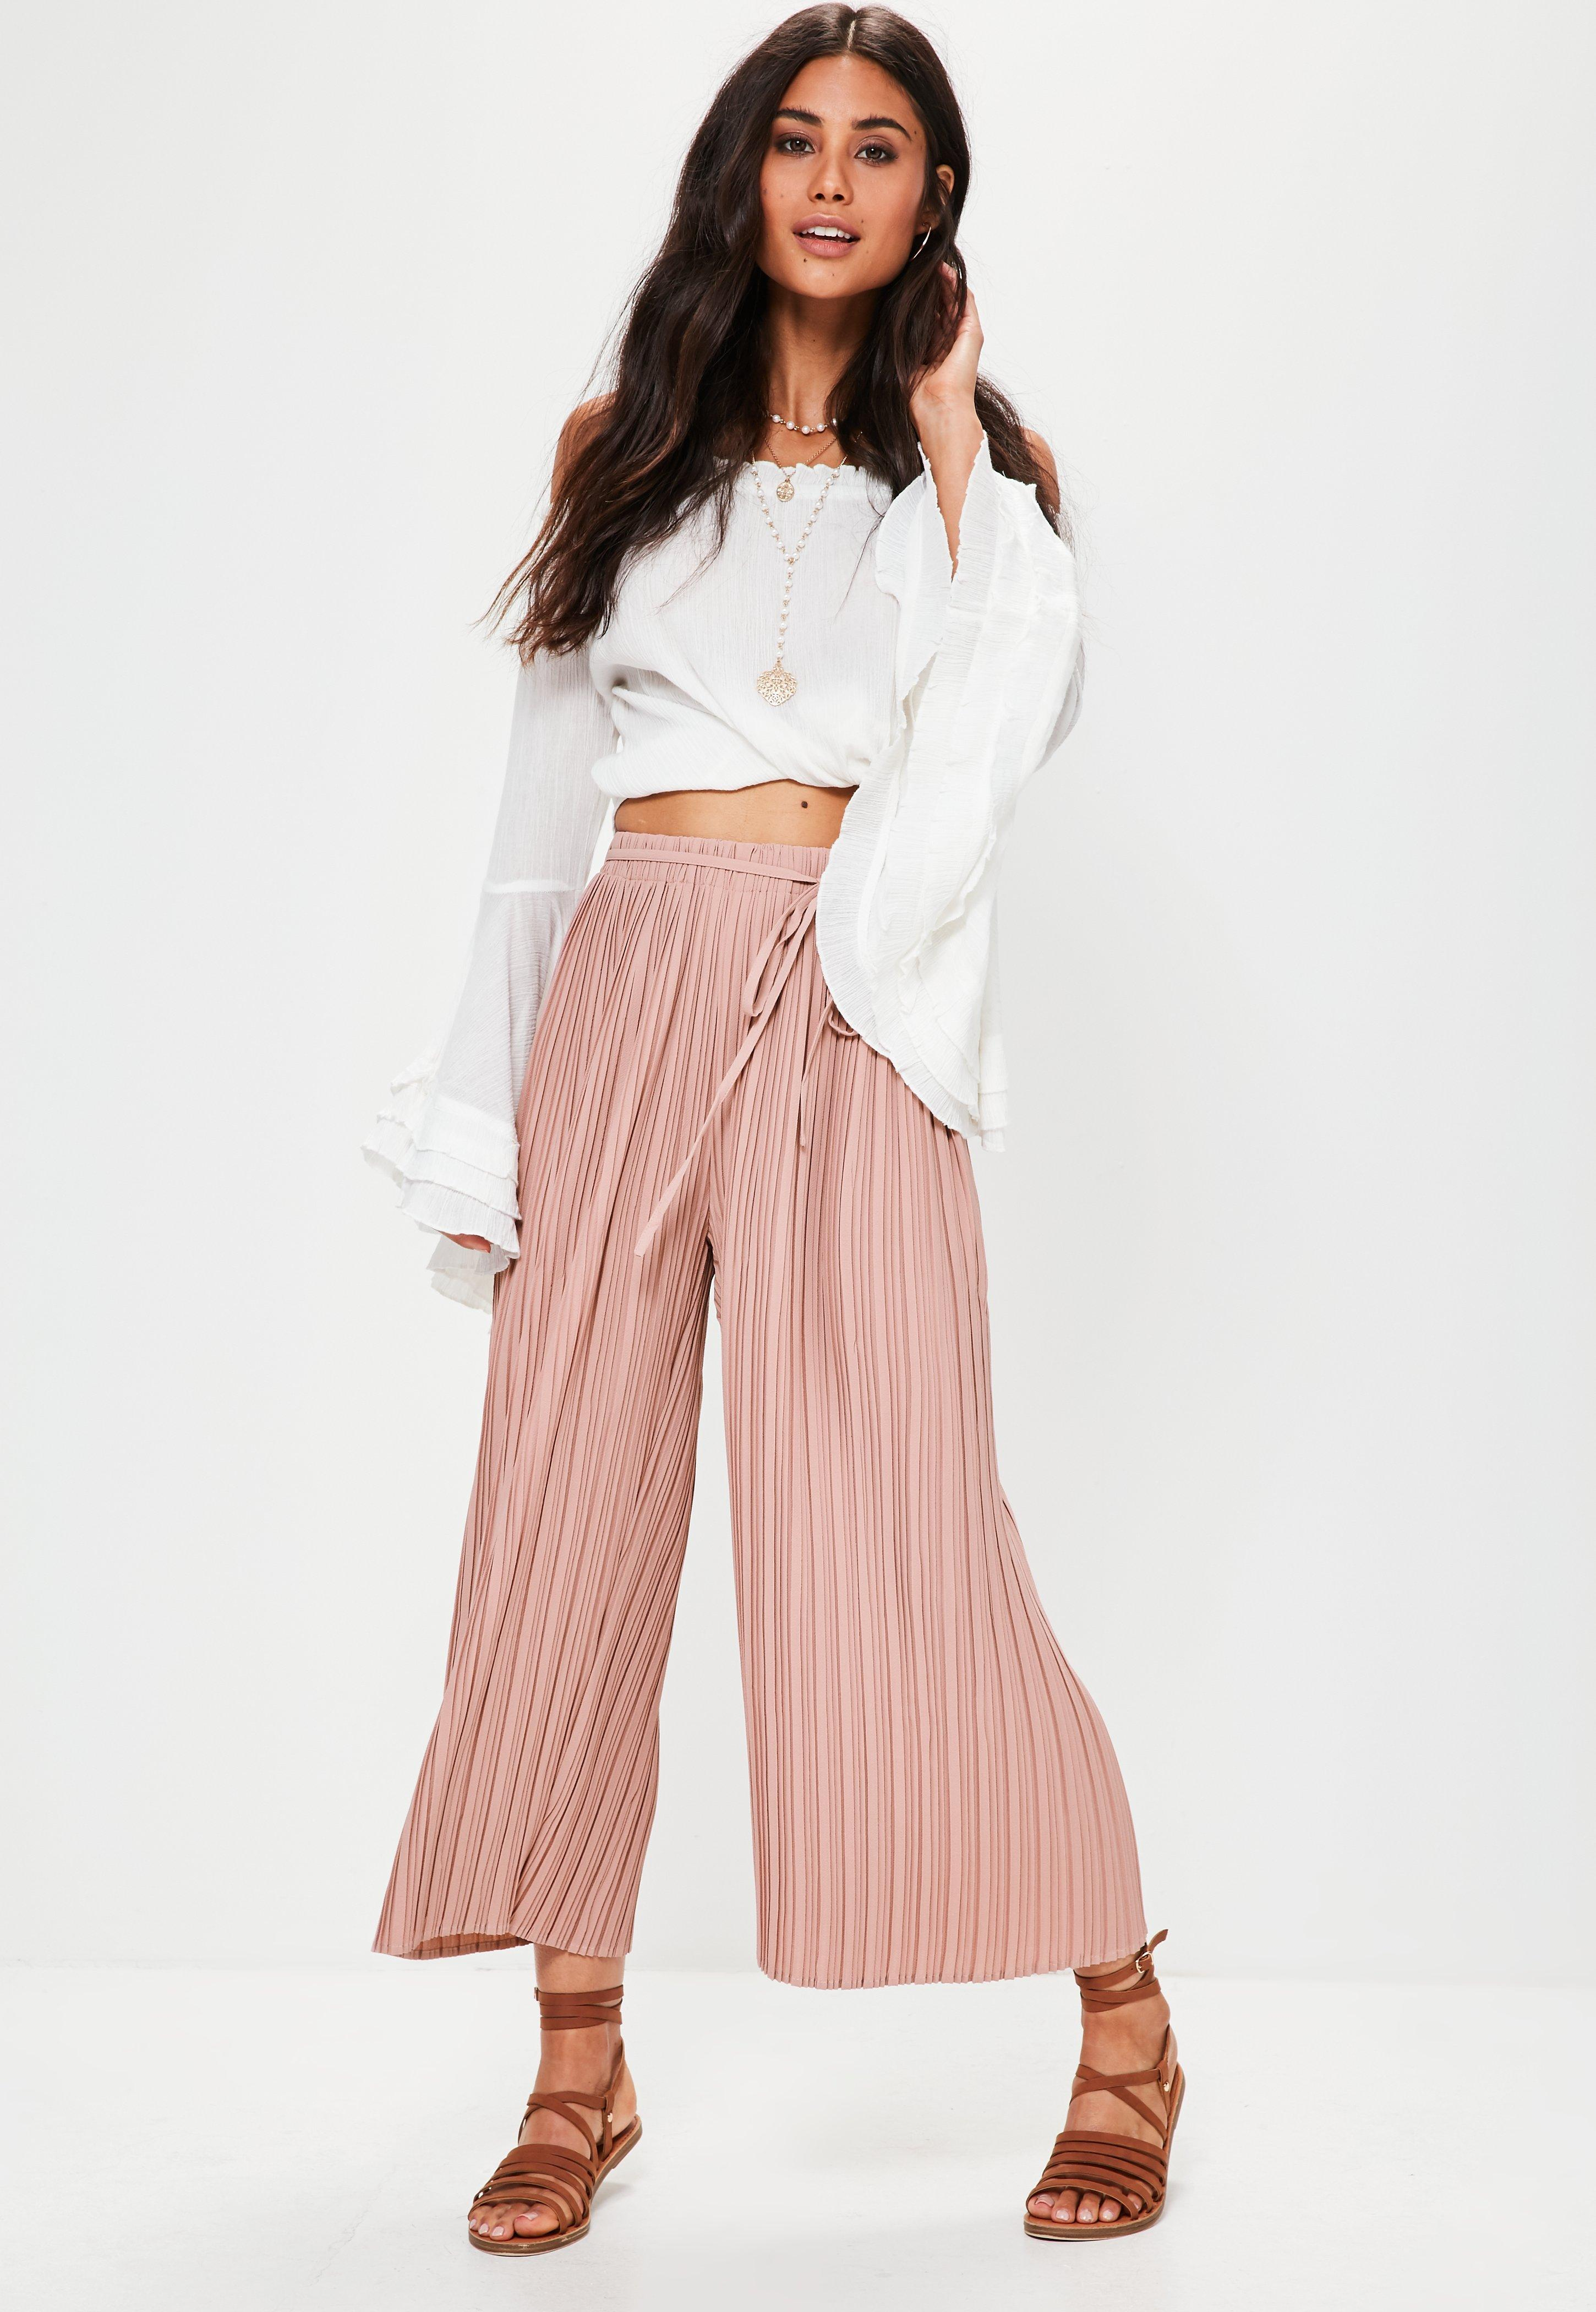 Ropa tall | Ropa tall de mujer online - Missguided